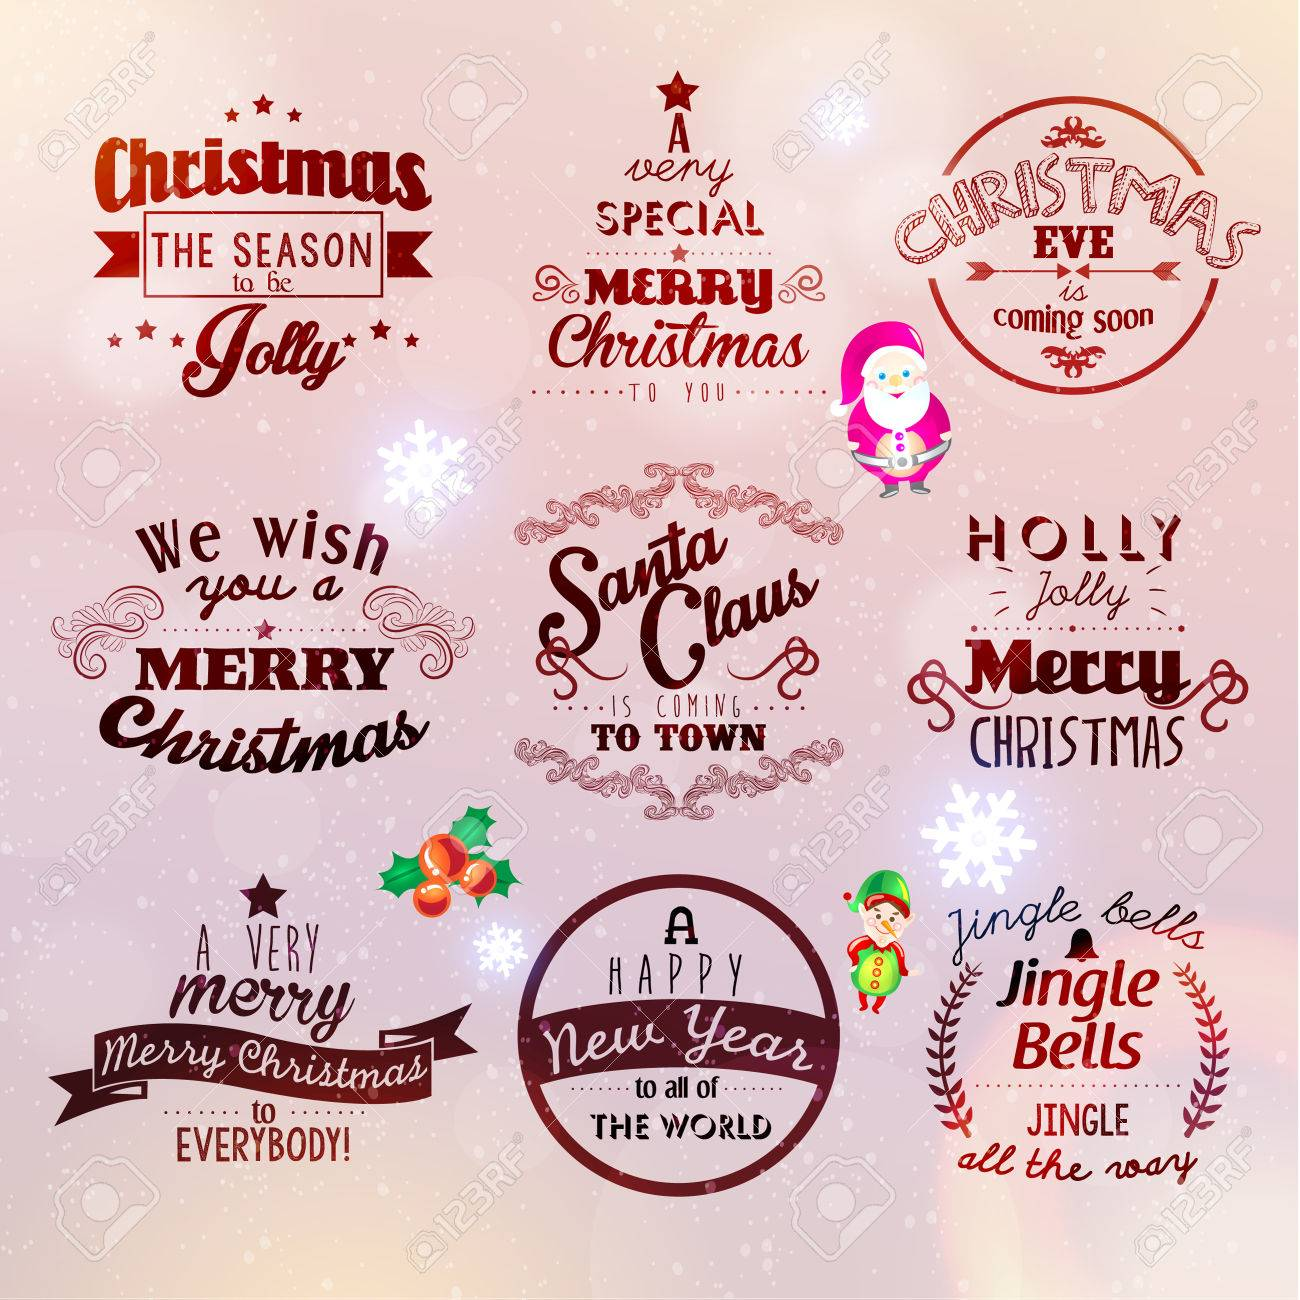 Merry christmas and happy new year 2015 season greetings quote merry christmas and happy new year 2015 season greetings quote vector design stock vector 33533219 m4hsunfo